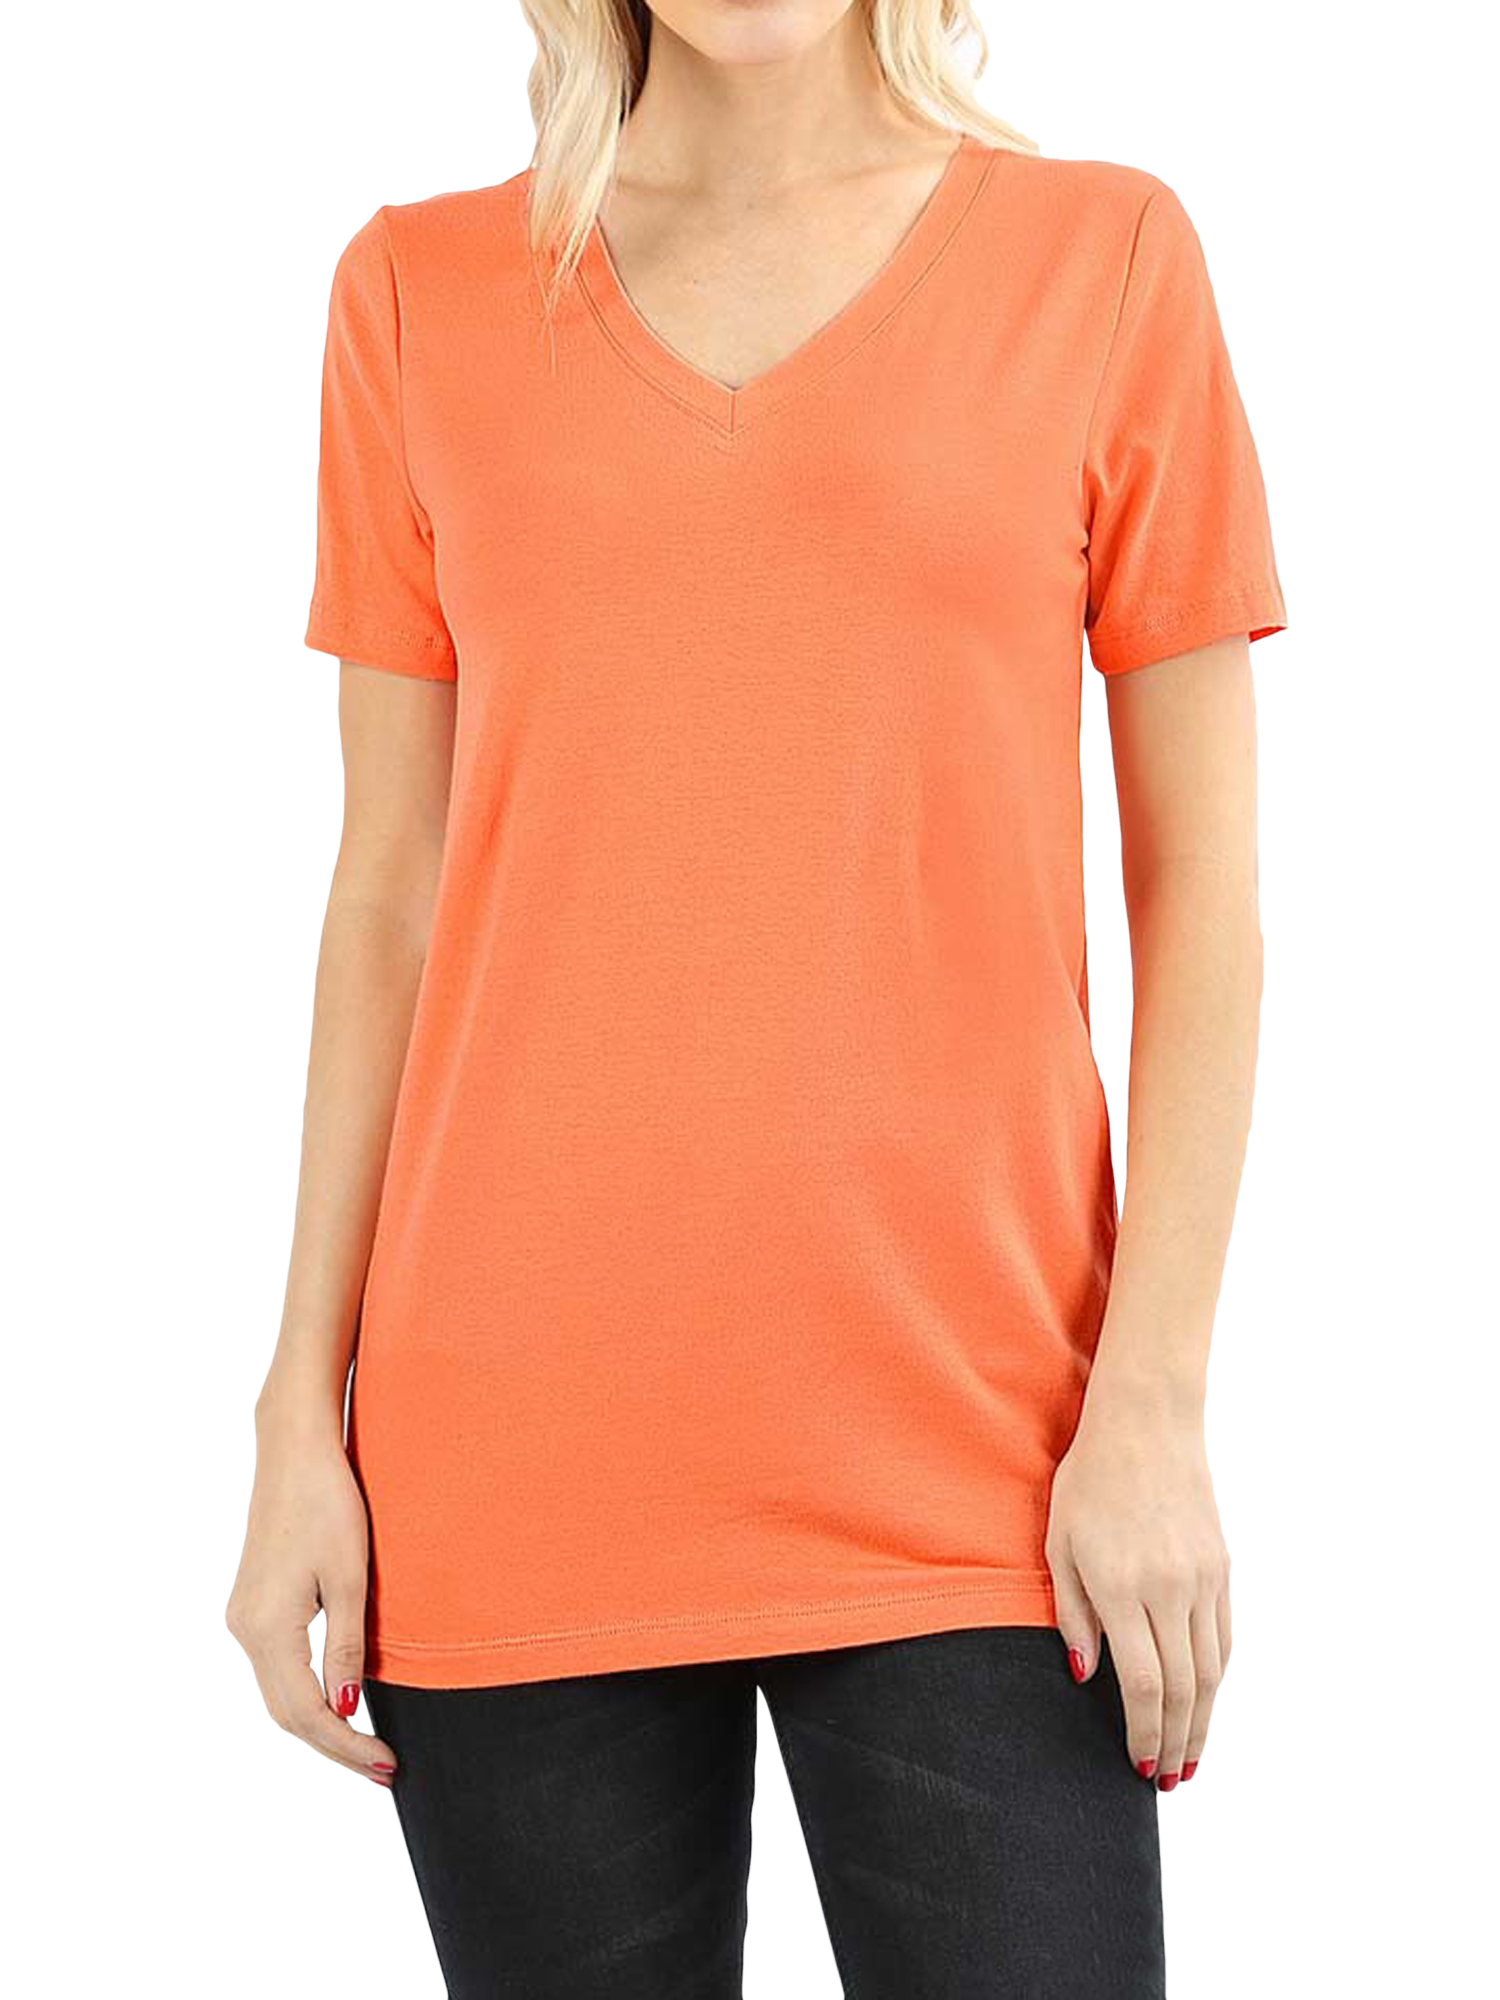 Criss Cross Strappy Front V-Neck Relaxed Fit Short Sleeve Tunic Basic Tee Top